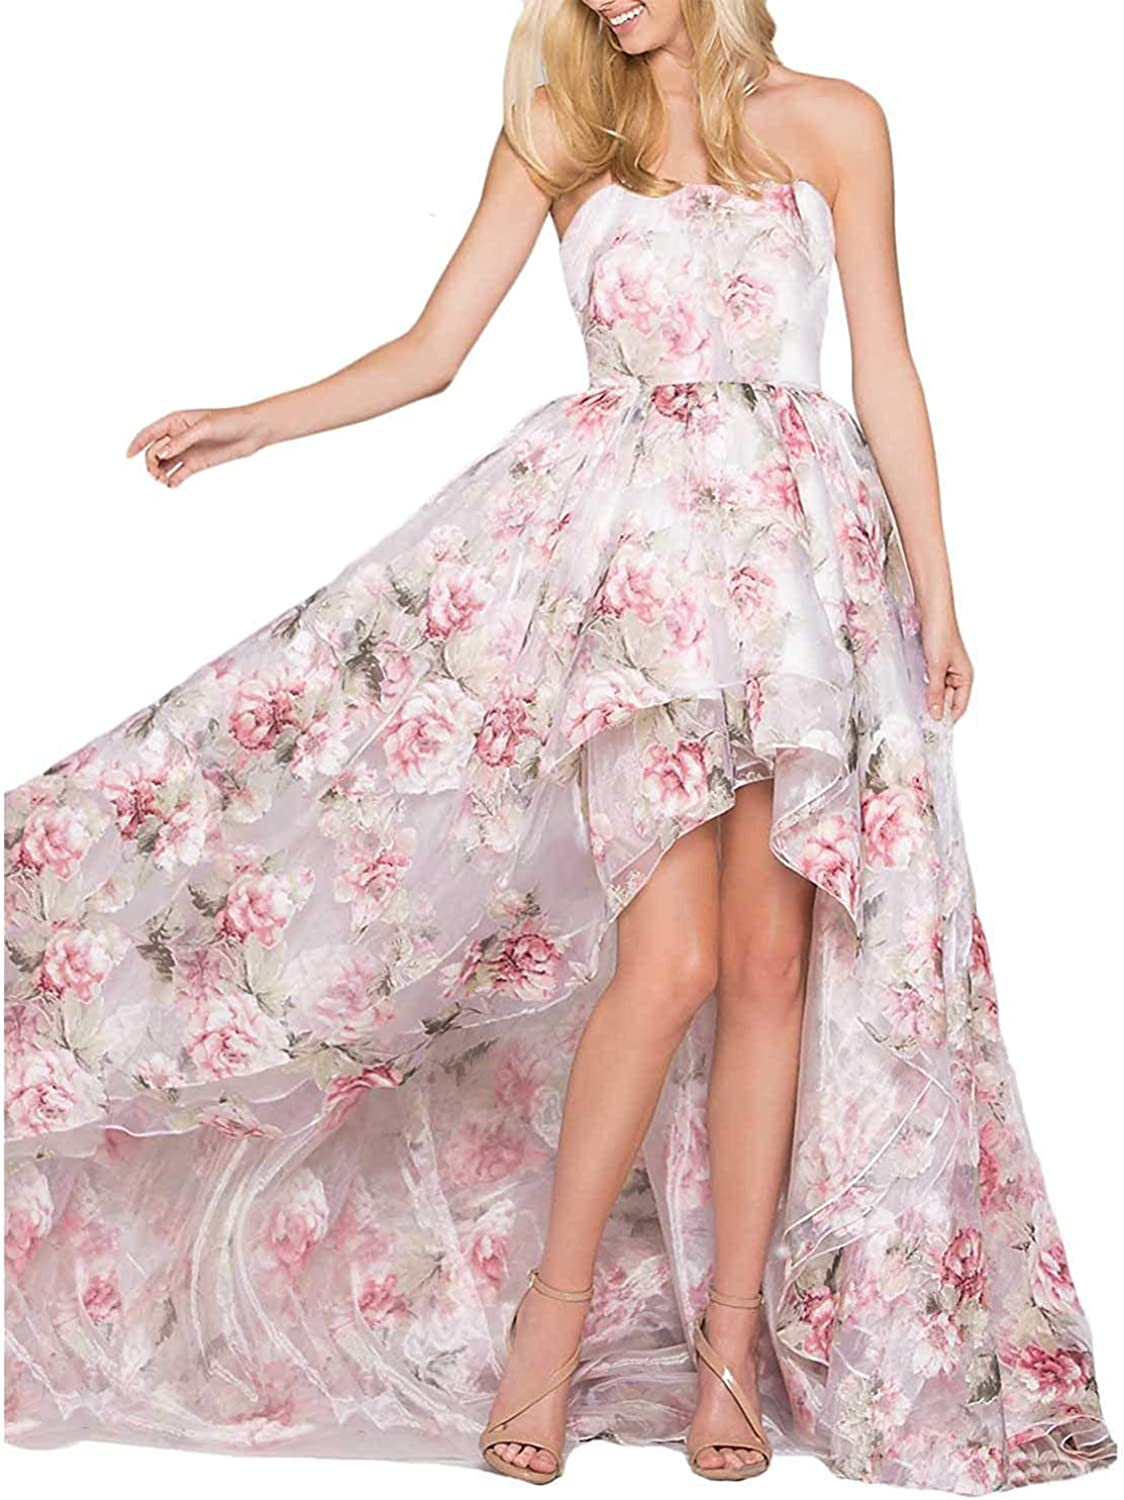 TTYbridal Elegant Floral Prom Homecoming Dress 2019 Aline Evening Party Dresses P20